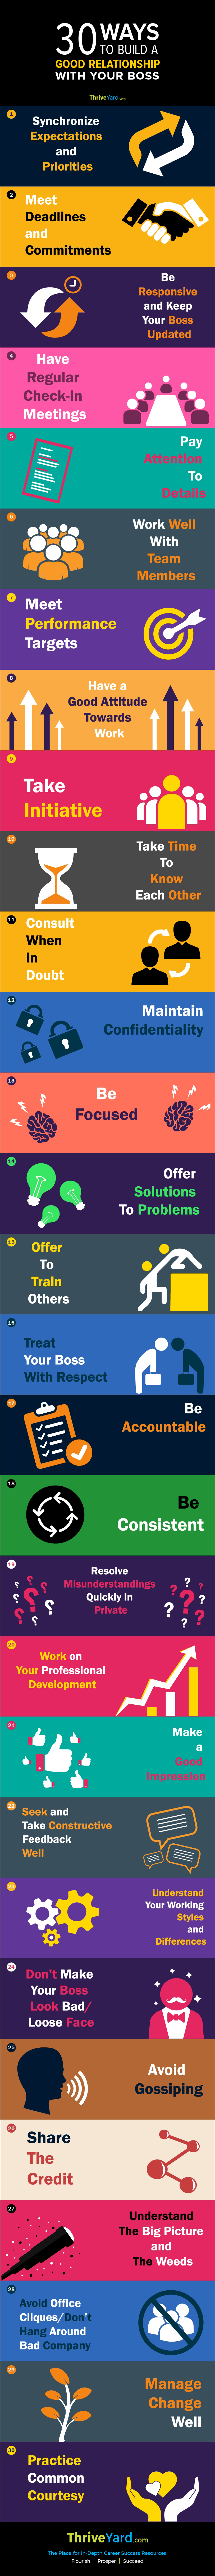 30 Ways to Build a Good Relationship with Your Boss - Infographic